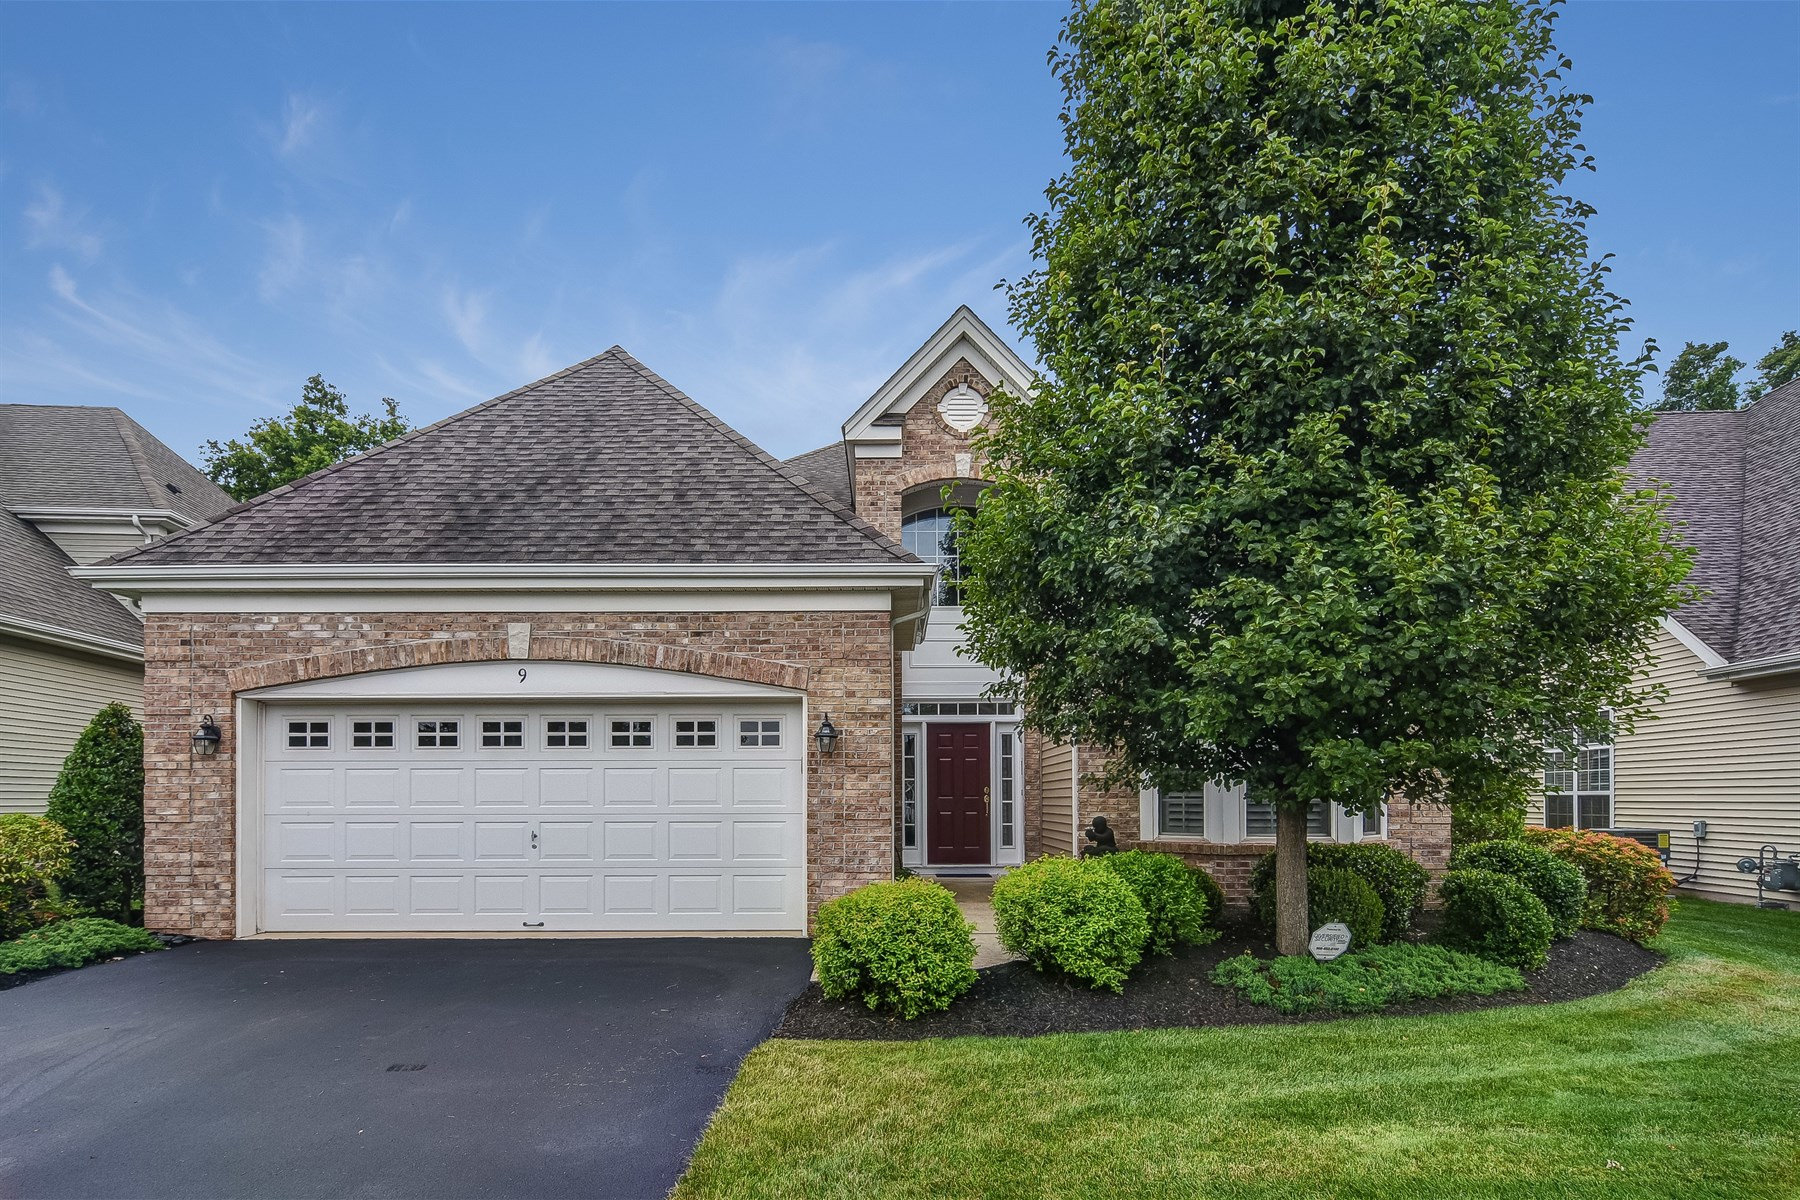 Single Family Home for Sale at Gorgeous Colonial 9 Schindler Court Franklin Twp, 08873 United States